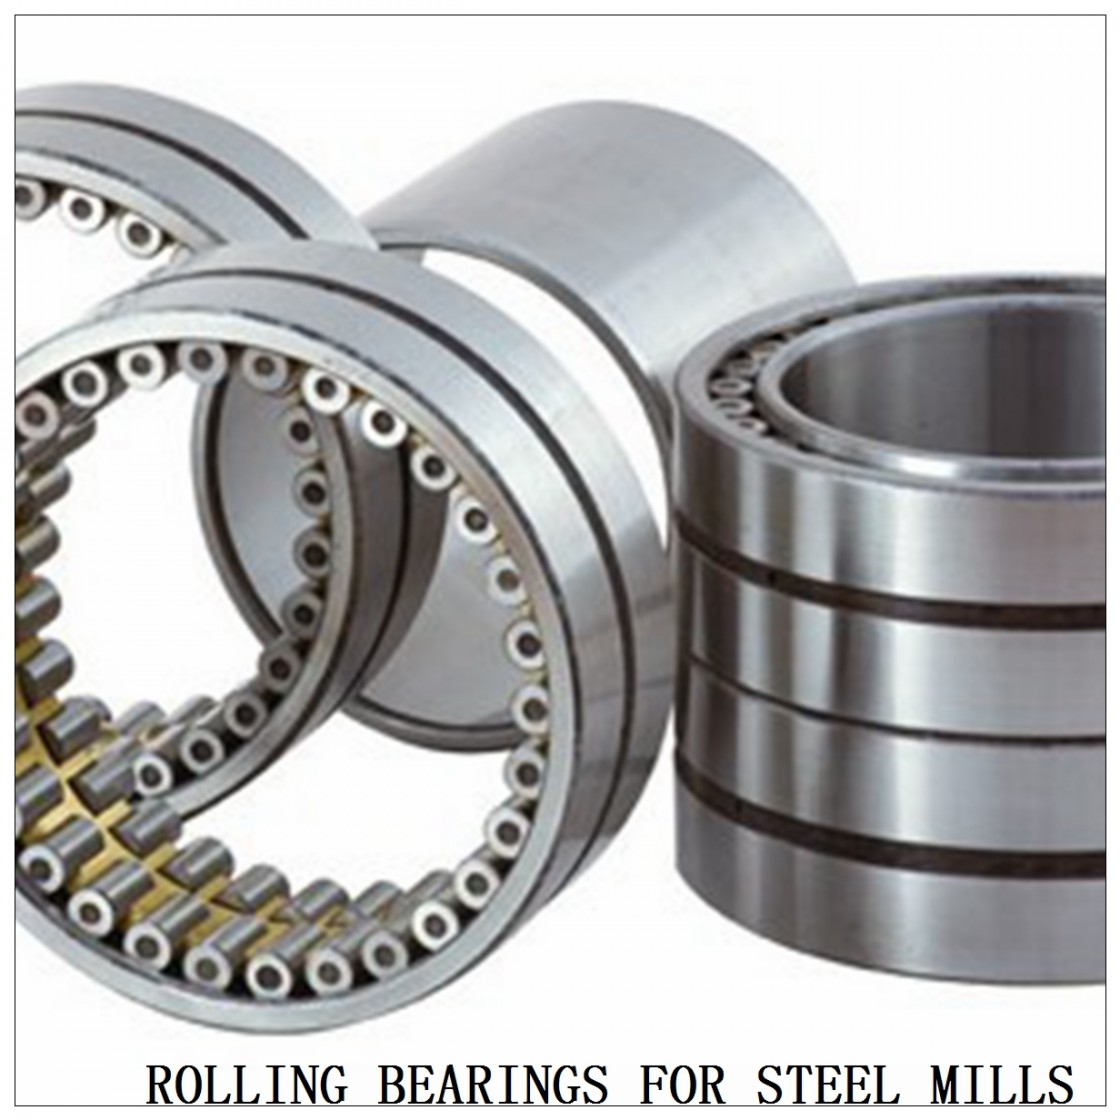 NSK 530KV895 ROLLING BEARINGS FOR STEEL MILLS